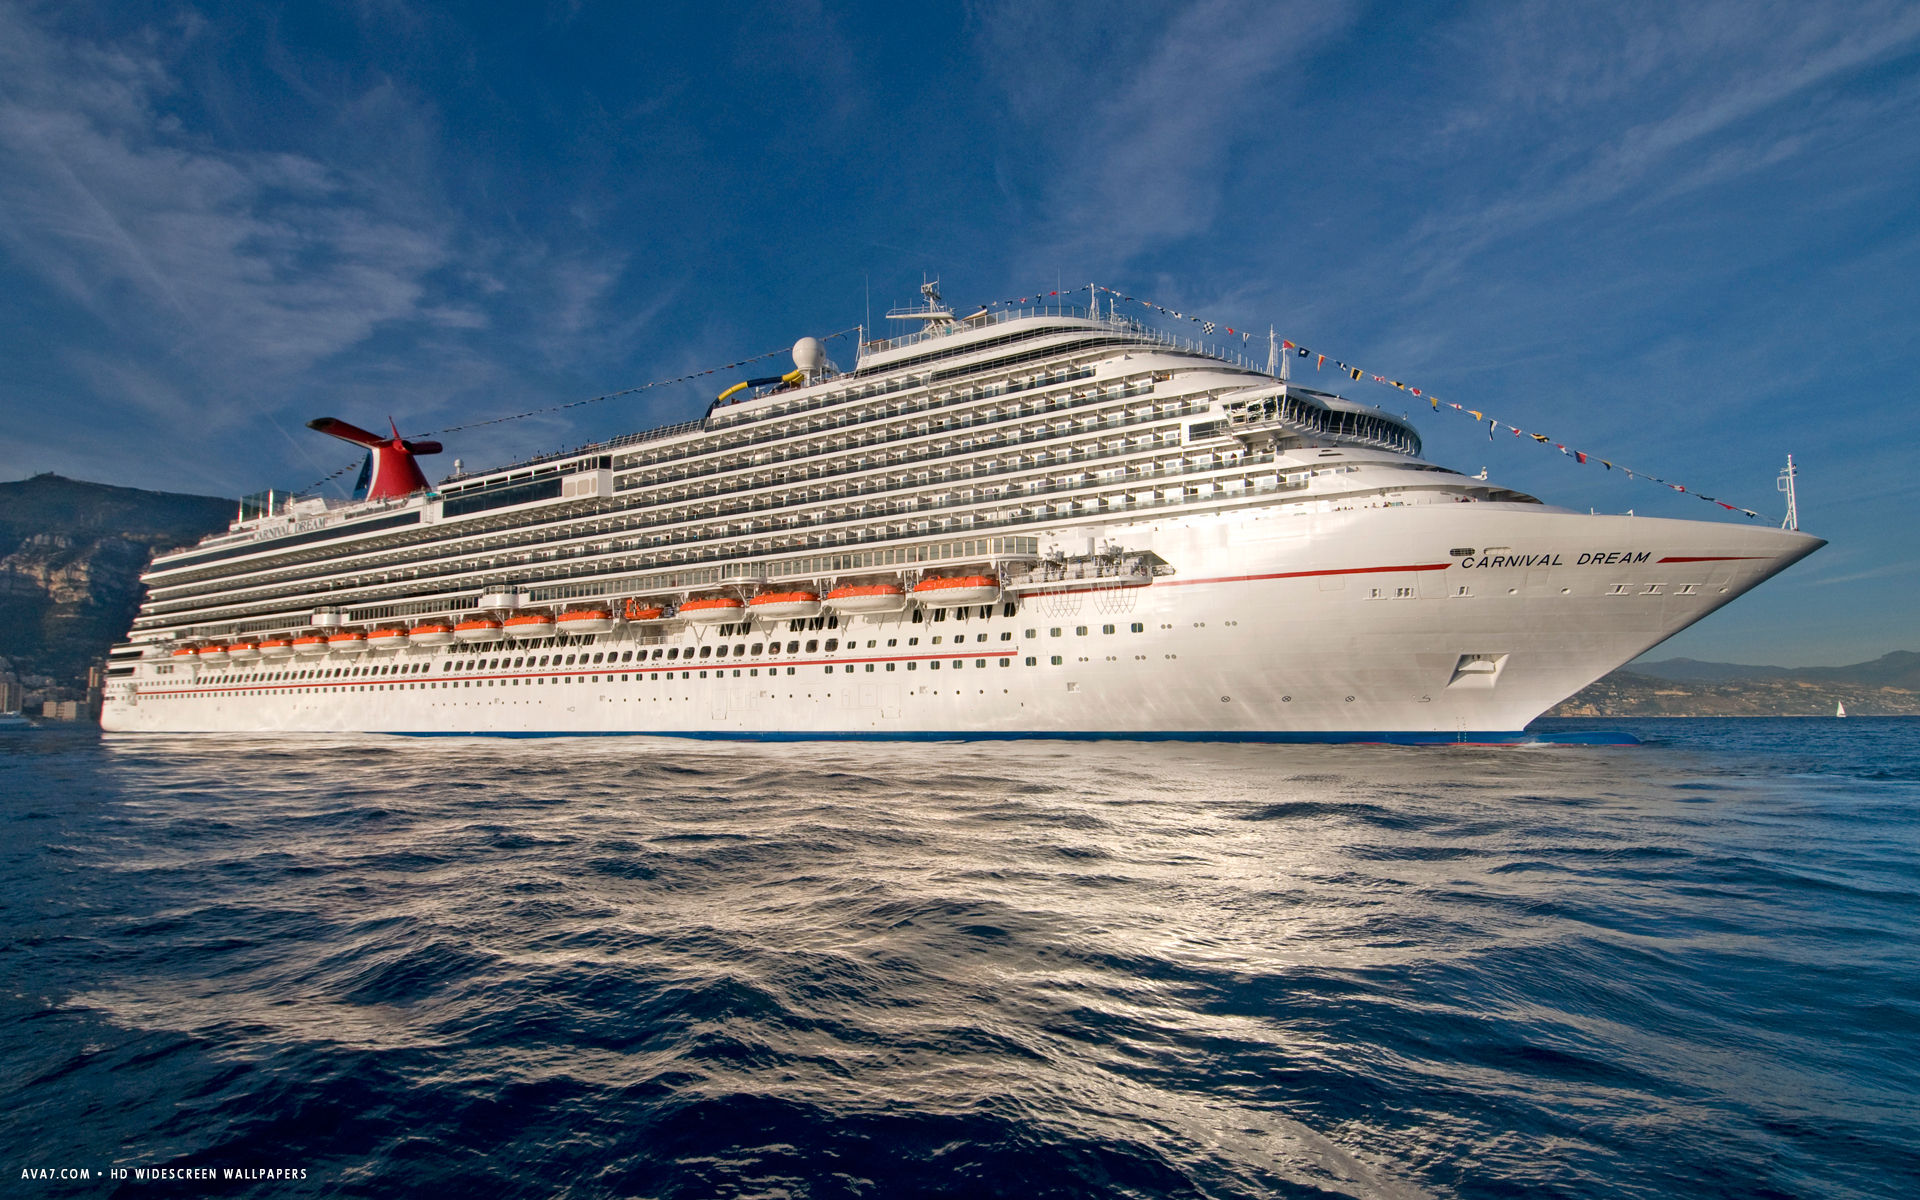 carnival dream cruise ship hd widescreen wallpaper